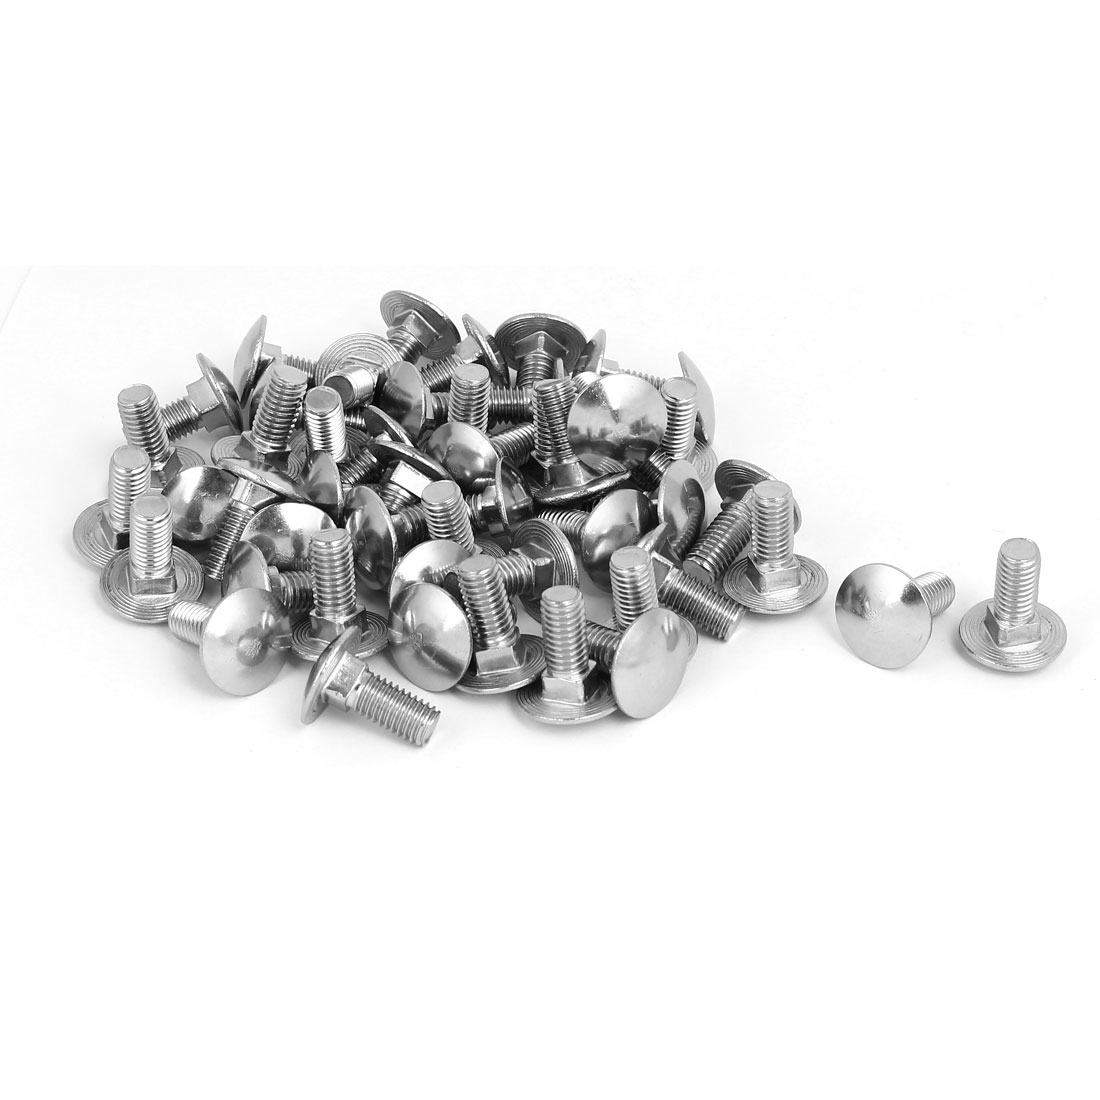 M8x20mm 304 Stainless Steel Round Cap Square Neck Trailer Carriage Bolts 50pcs